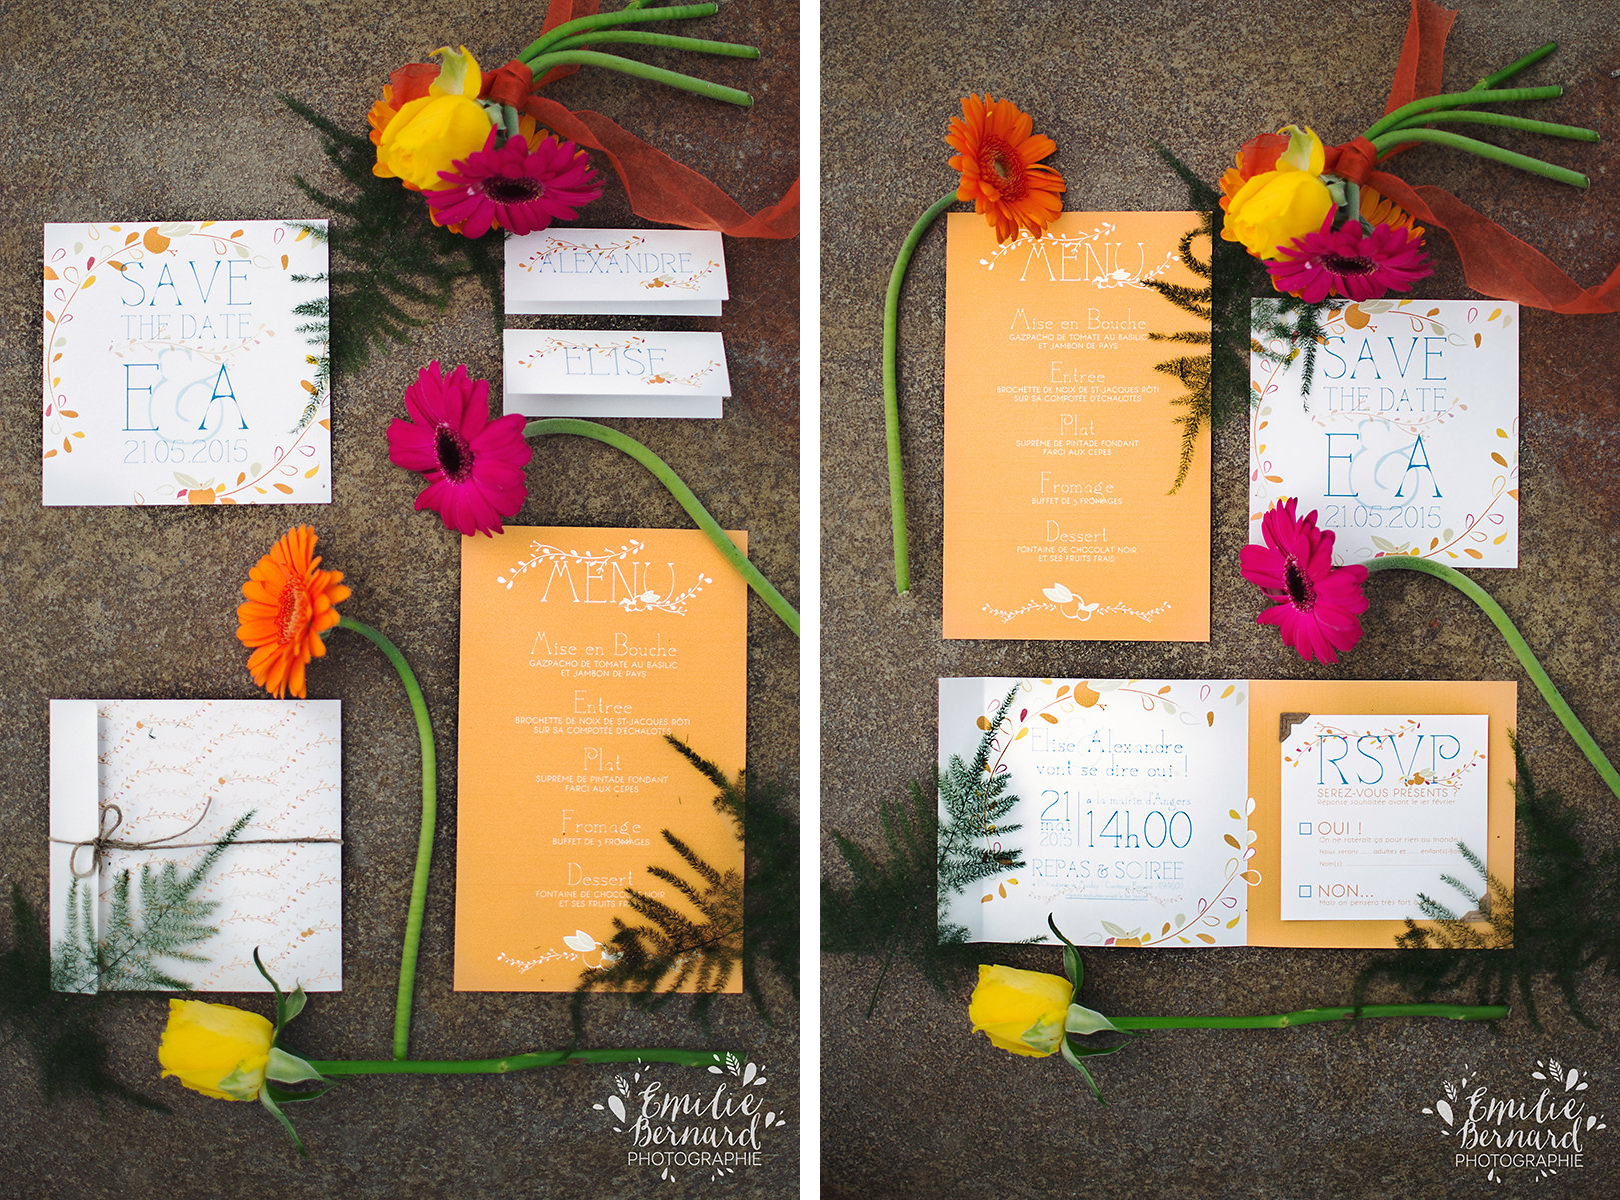 InspirationOrangerie papeterie mariage